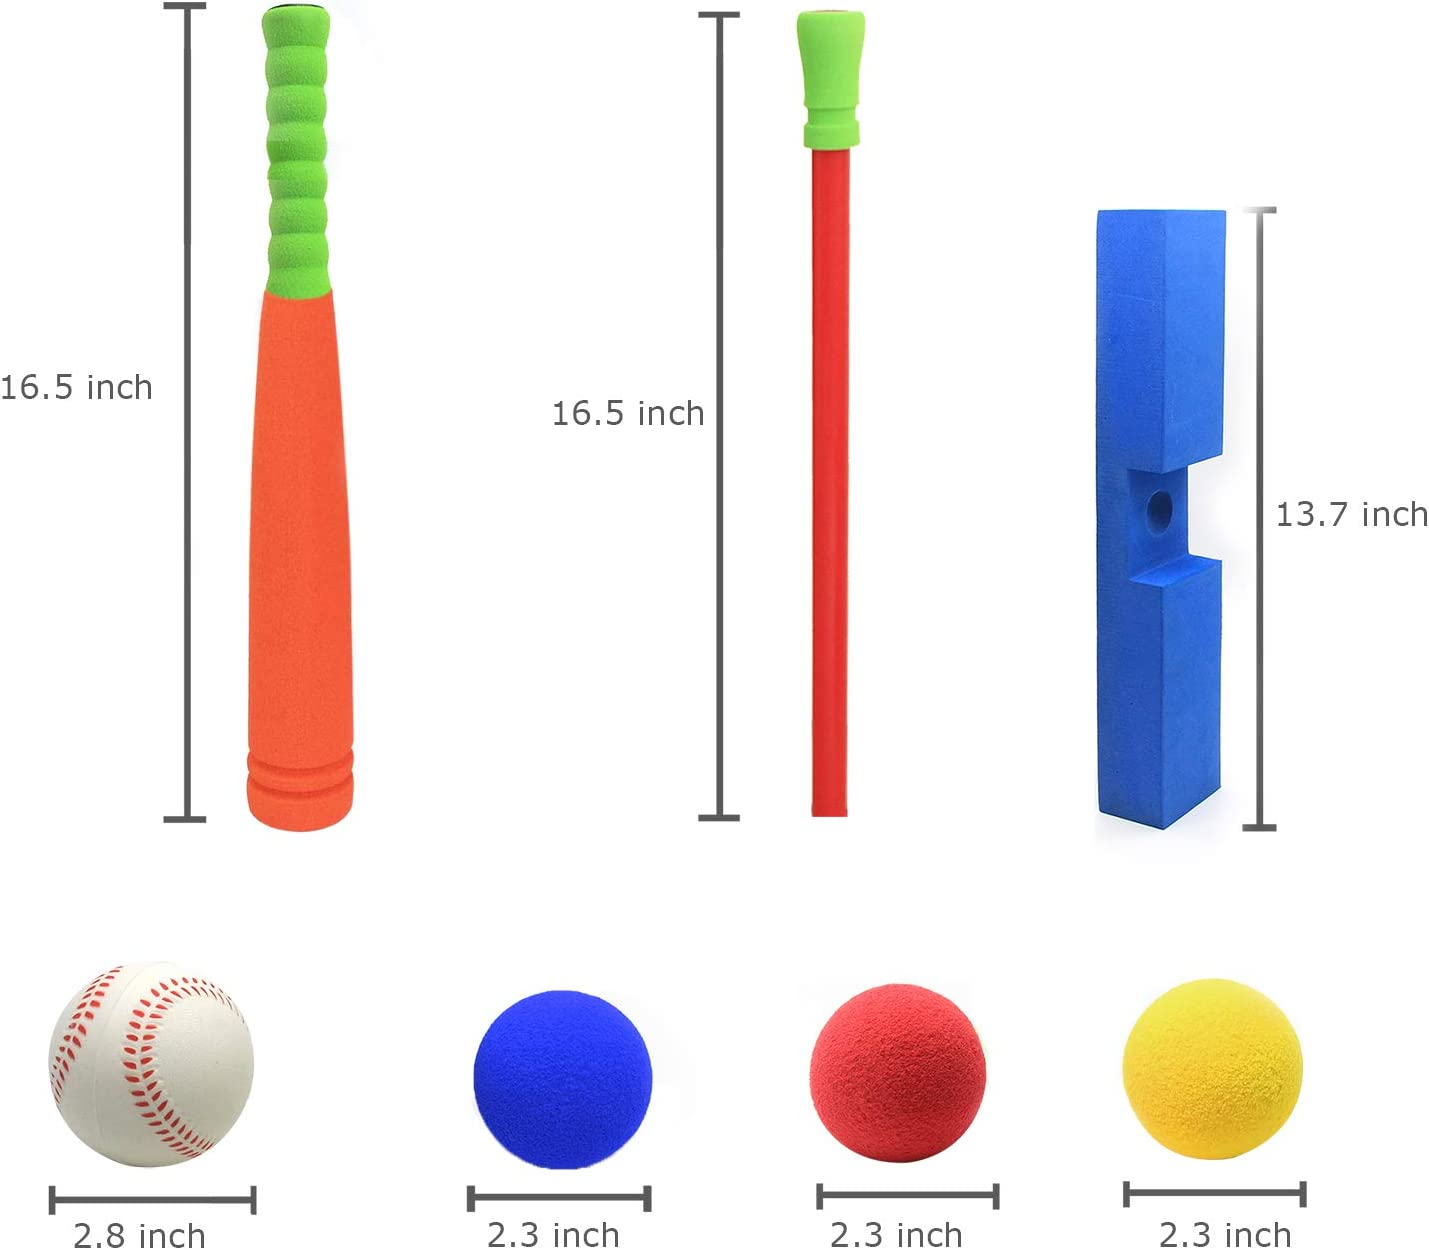 CeleMoon 16.5 Inch Kids Foam Soft T Ball Baseball Toy Set for Toddlers, 8 Different Colored Balls Included + Carrying Bag, Gift for Kids 1 2 3 Years Old, Orange: Sports & Outdoors